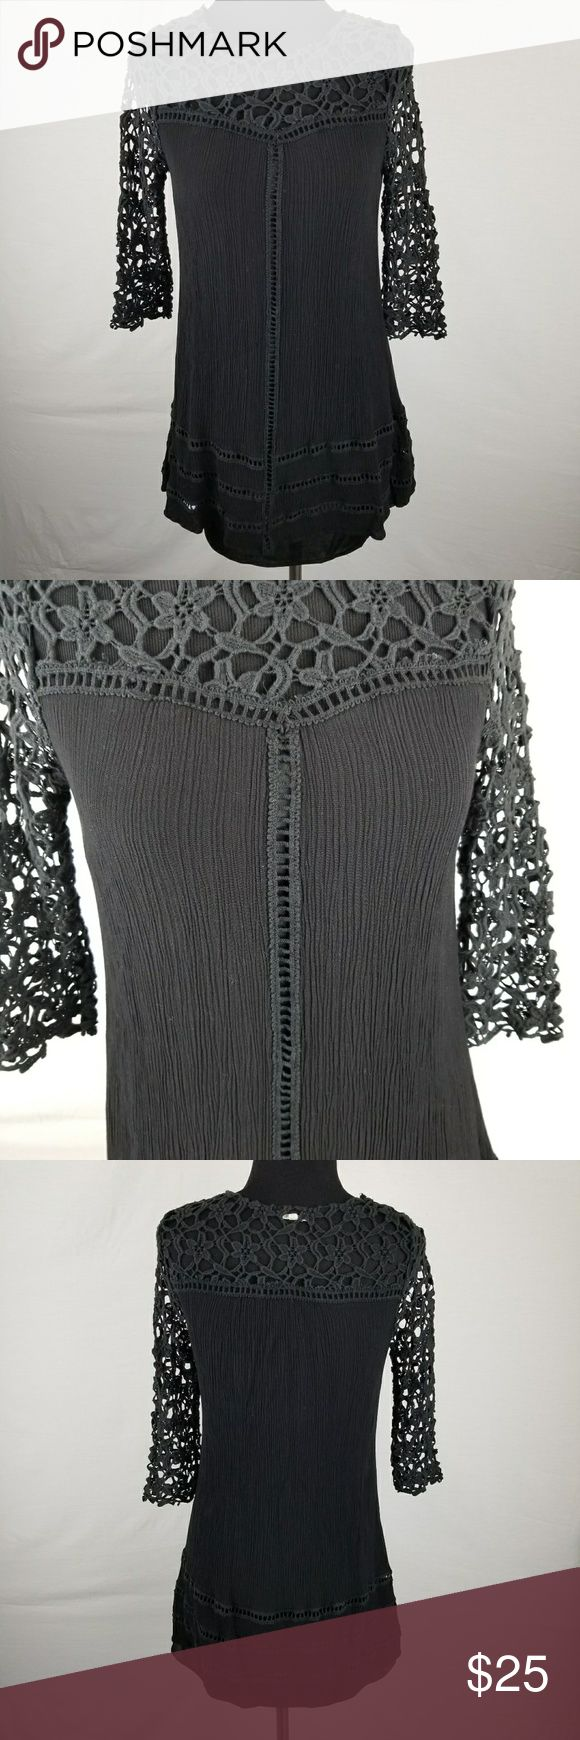 En Creme SZ S black tunic shirt Good condition. No holes or major signs of wear. Very cute crochet details around neckline and sleeves. En Creme Tops Tunics